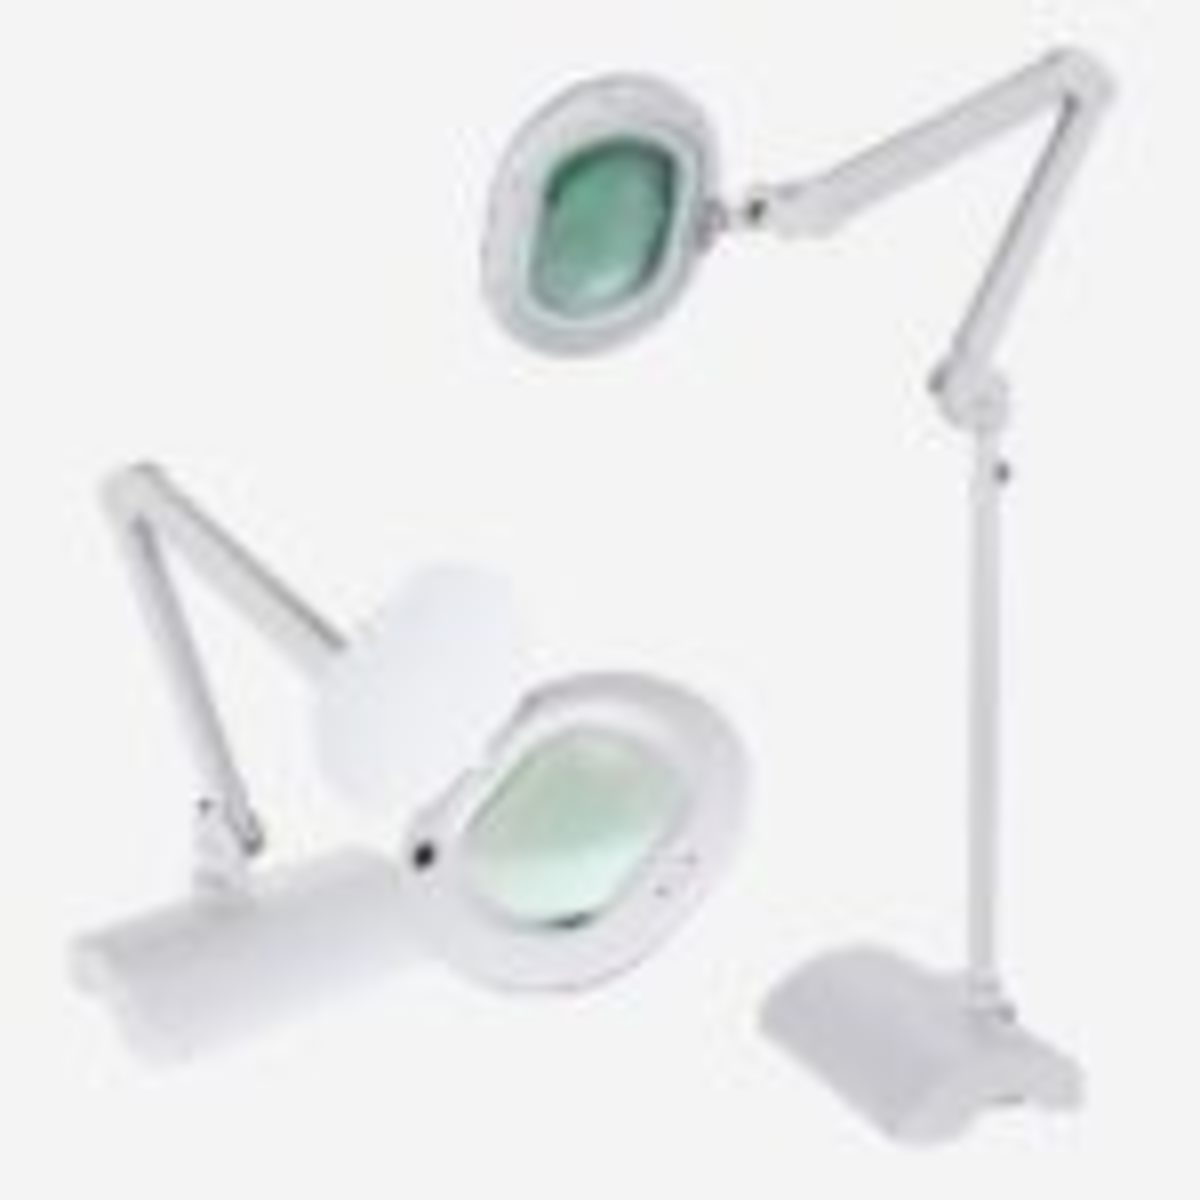 LightView XL 2in1 magnifying lamp from Brightech.